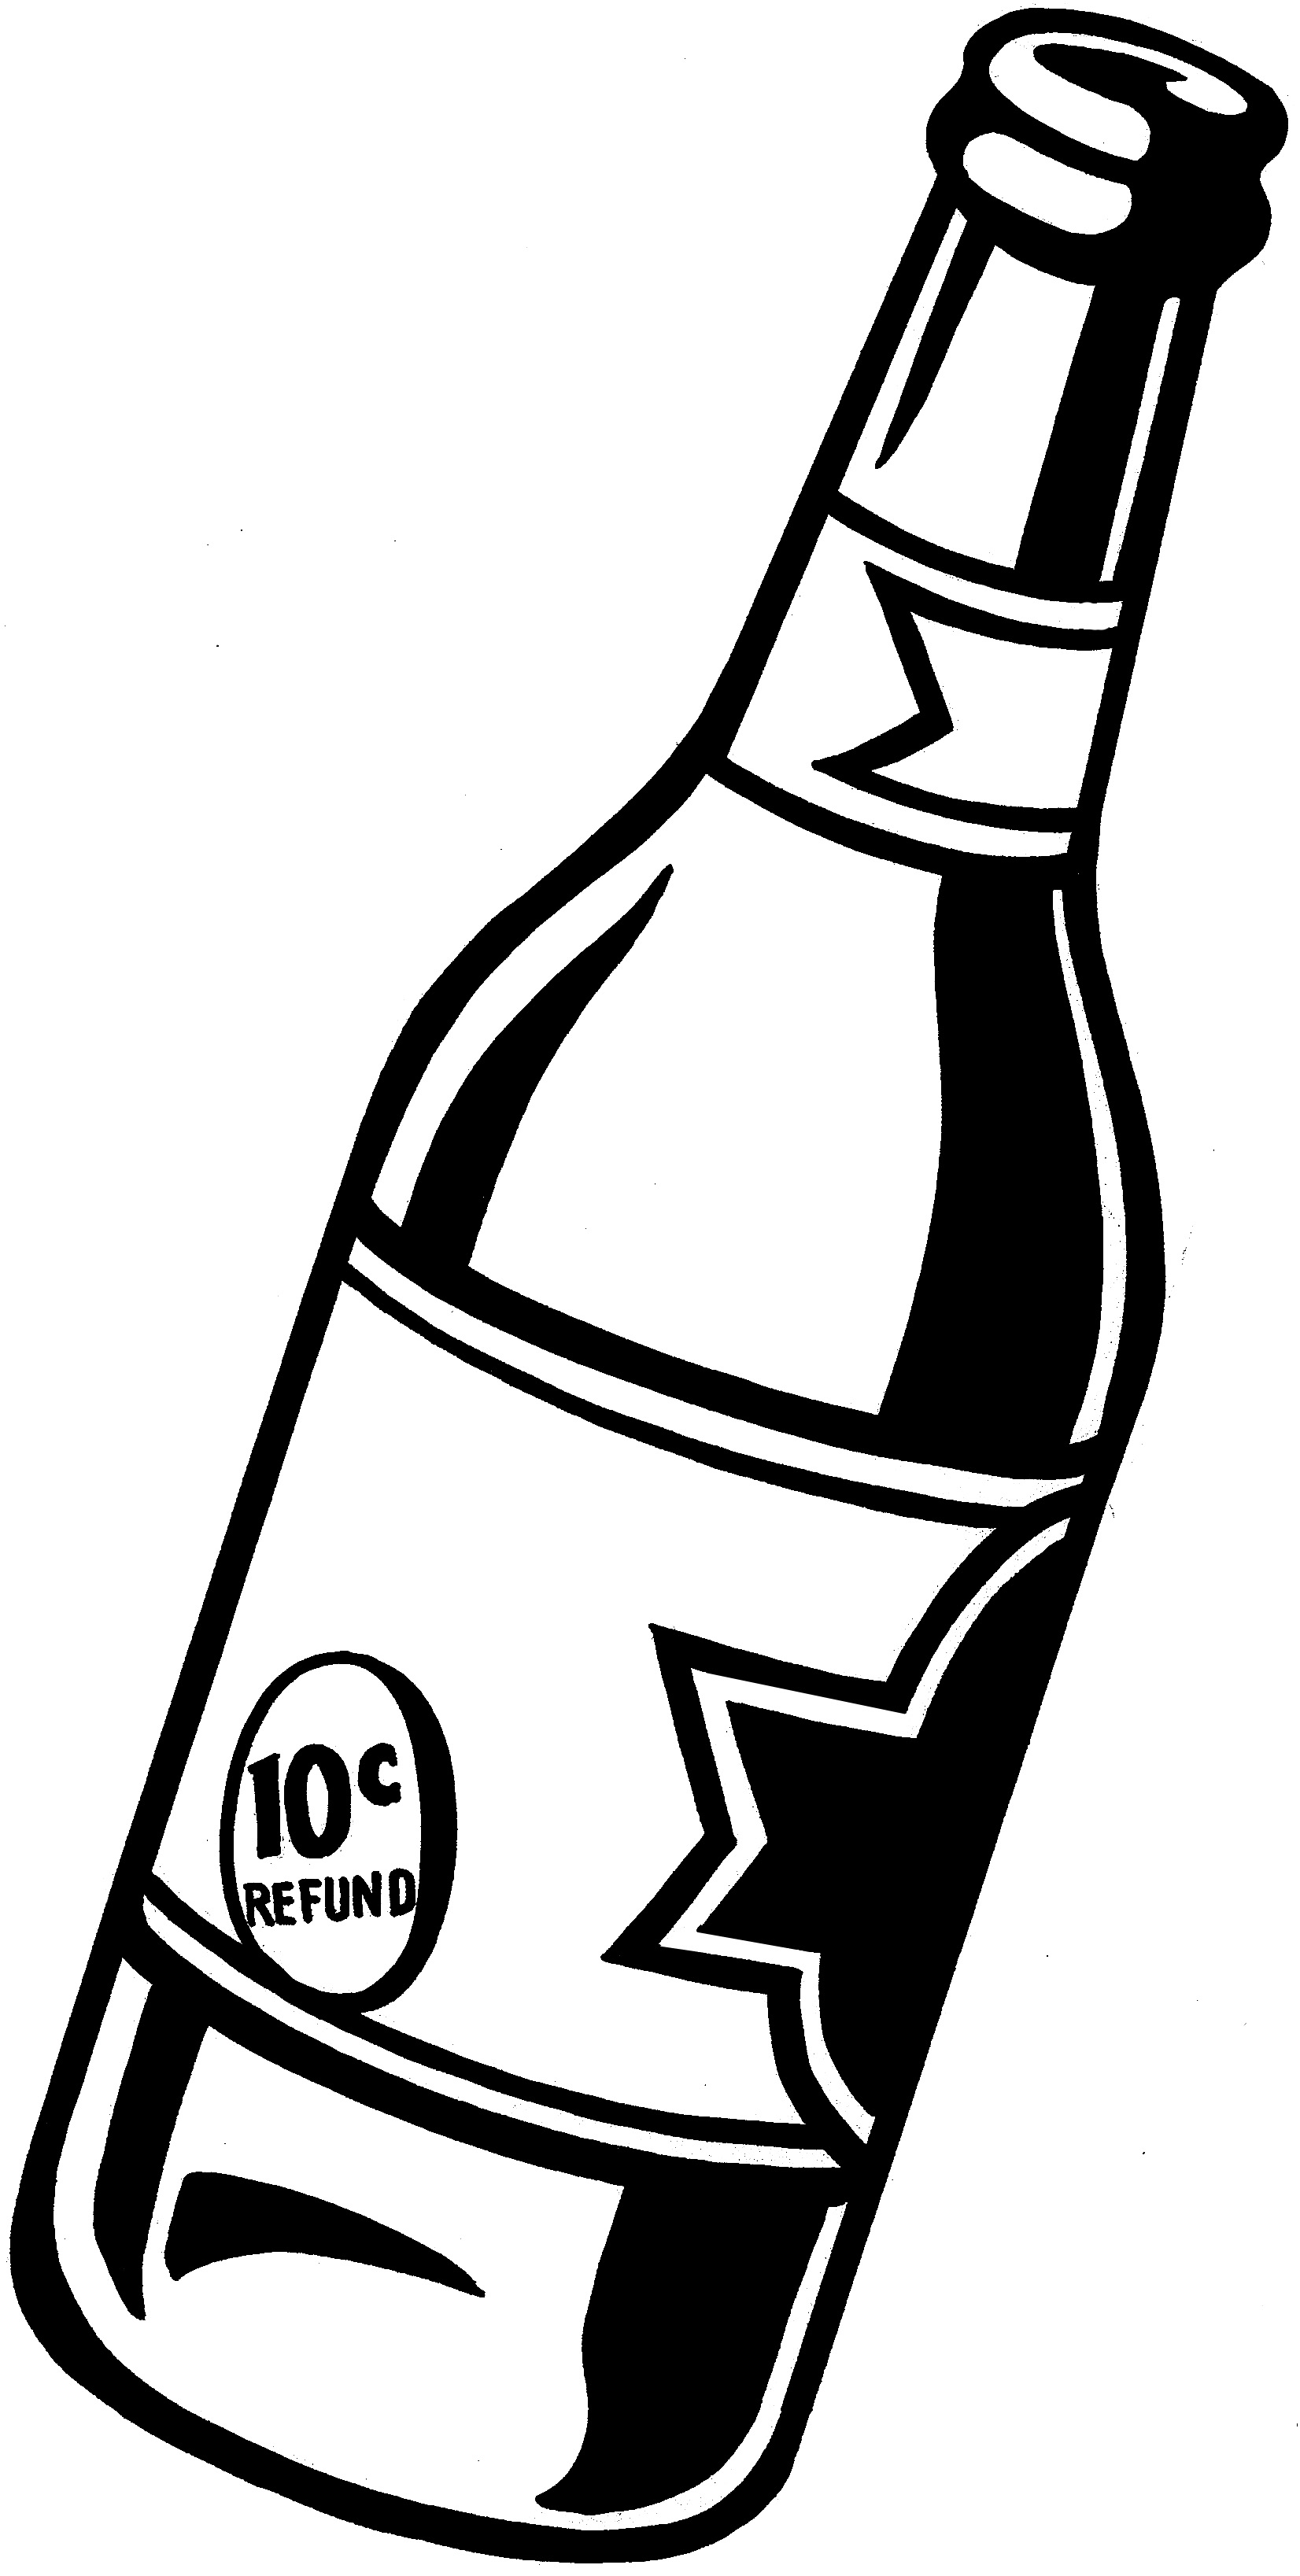 Toast cheers beer bottle bud light image on beach clipart graphic black and white library Free Beer Bottle Clip Art, Download Free Clip Art, Free Clip Art on ... graphic black and white library